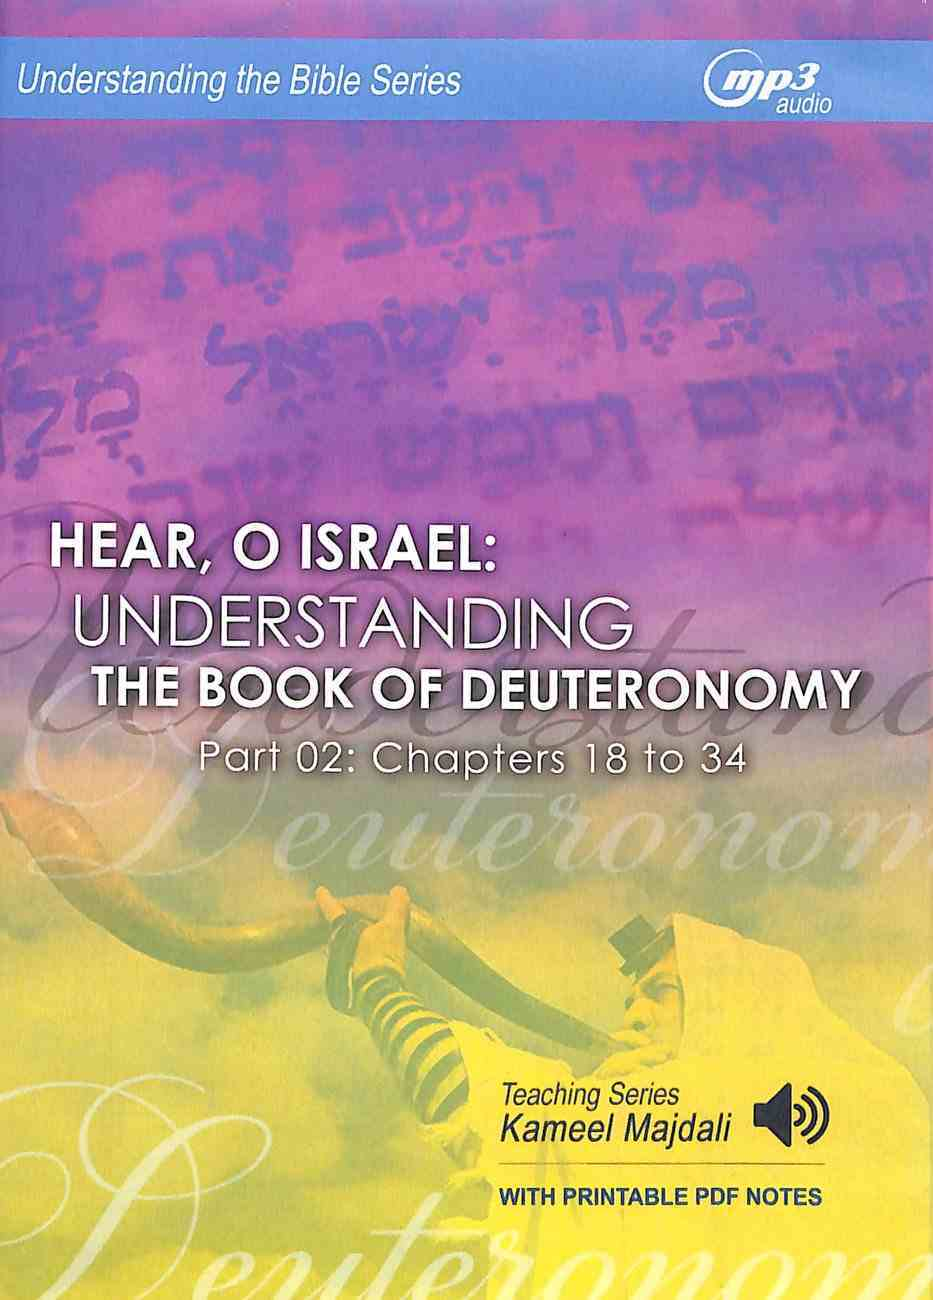 Hear, O Israel : Understanding the Book of Deuteronomy, Chapters 18 to 34 (With Printable Pdf Notes) (Part 2, MP3 Audio, 17 Hrs) (Understanding The Bible Audio Series) CD